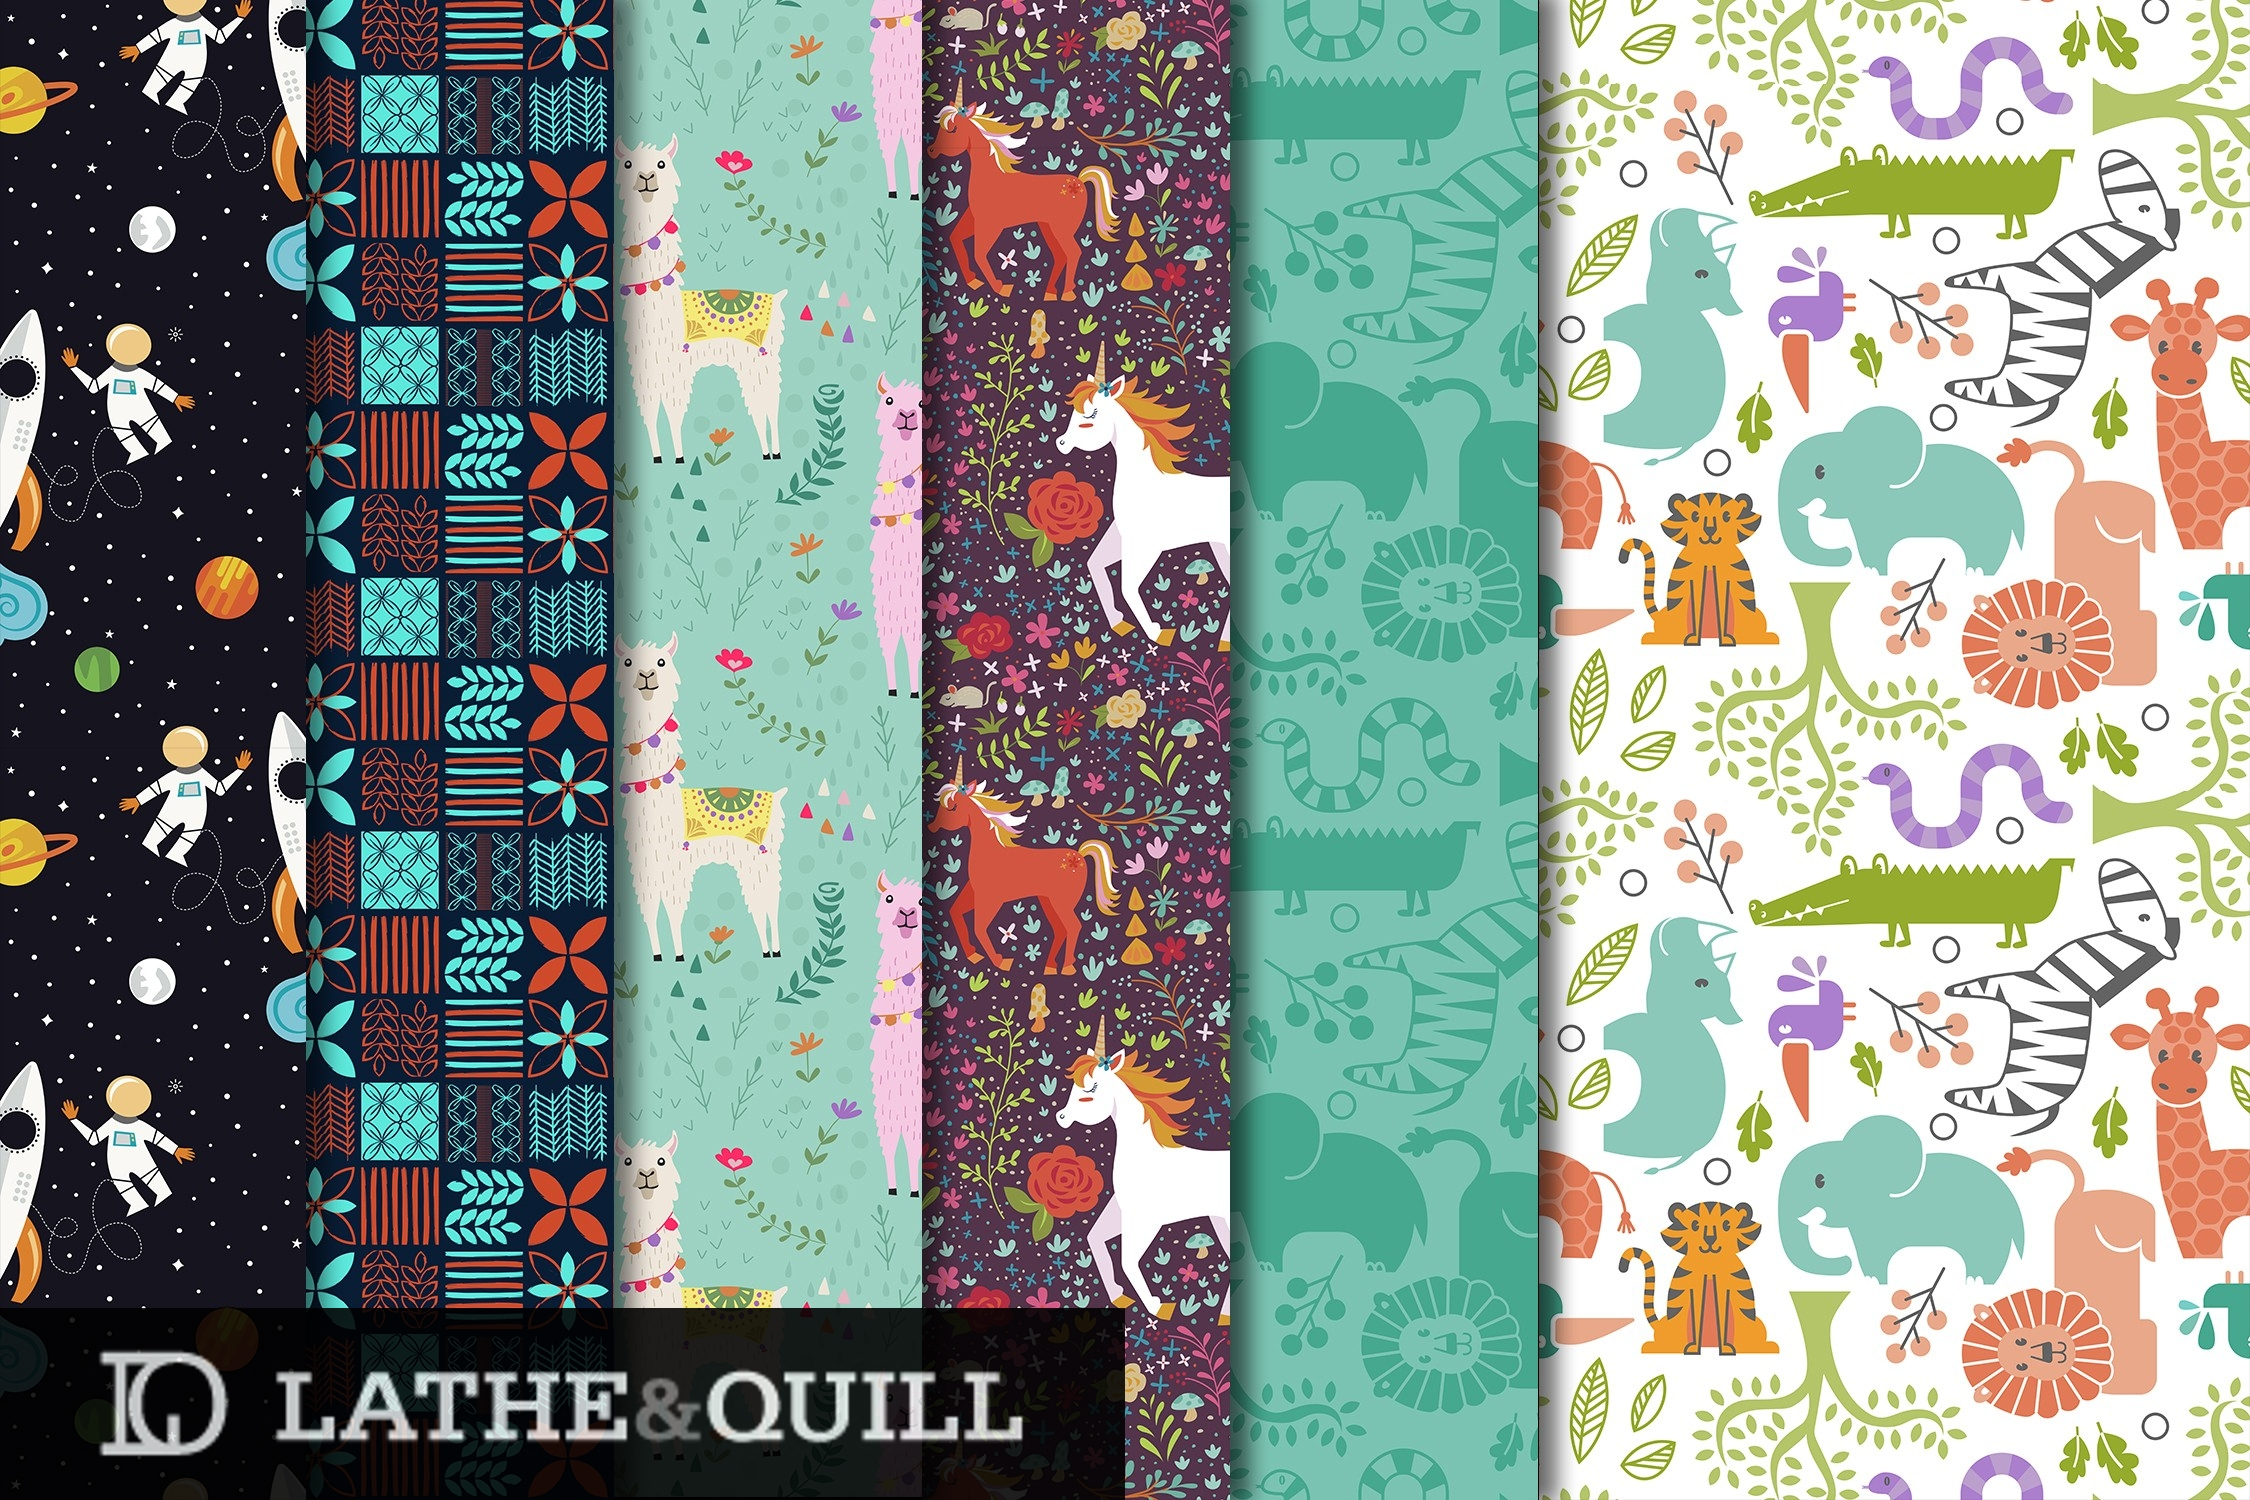 fun patterns for children's room